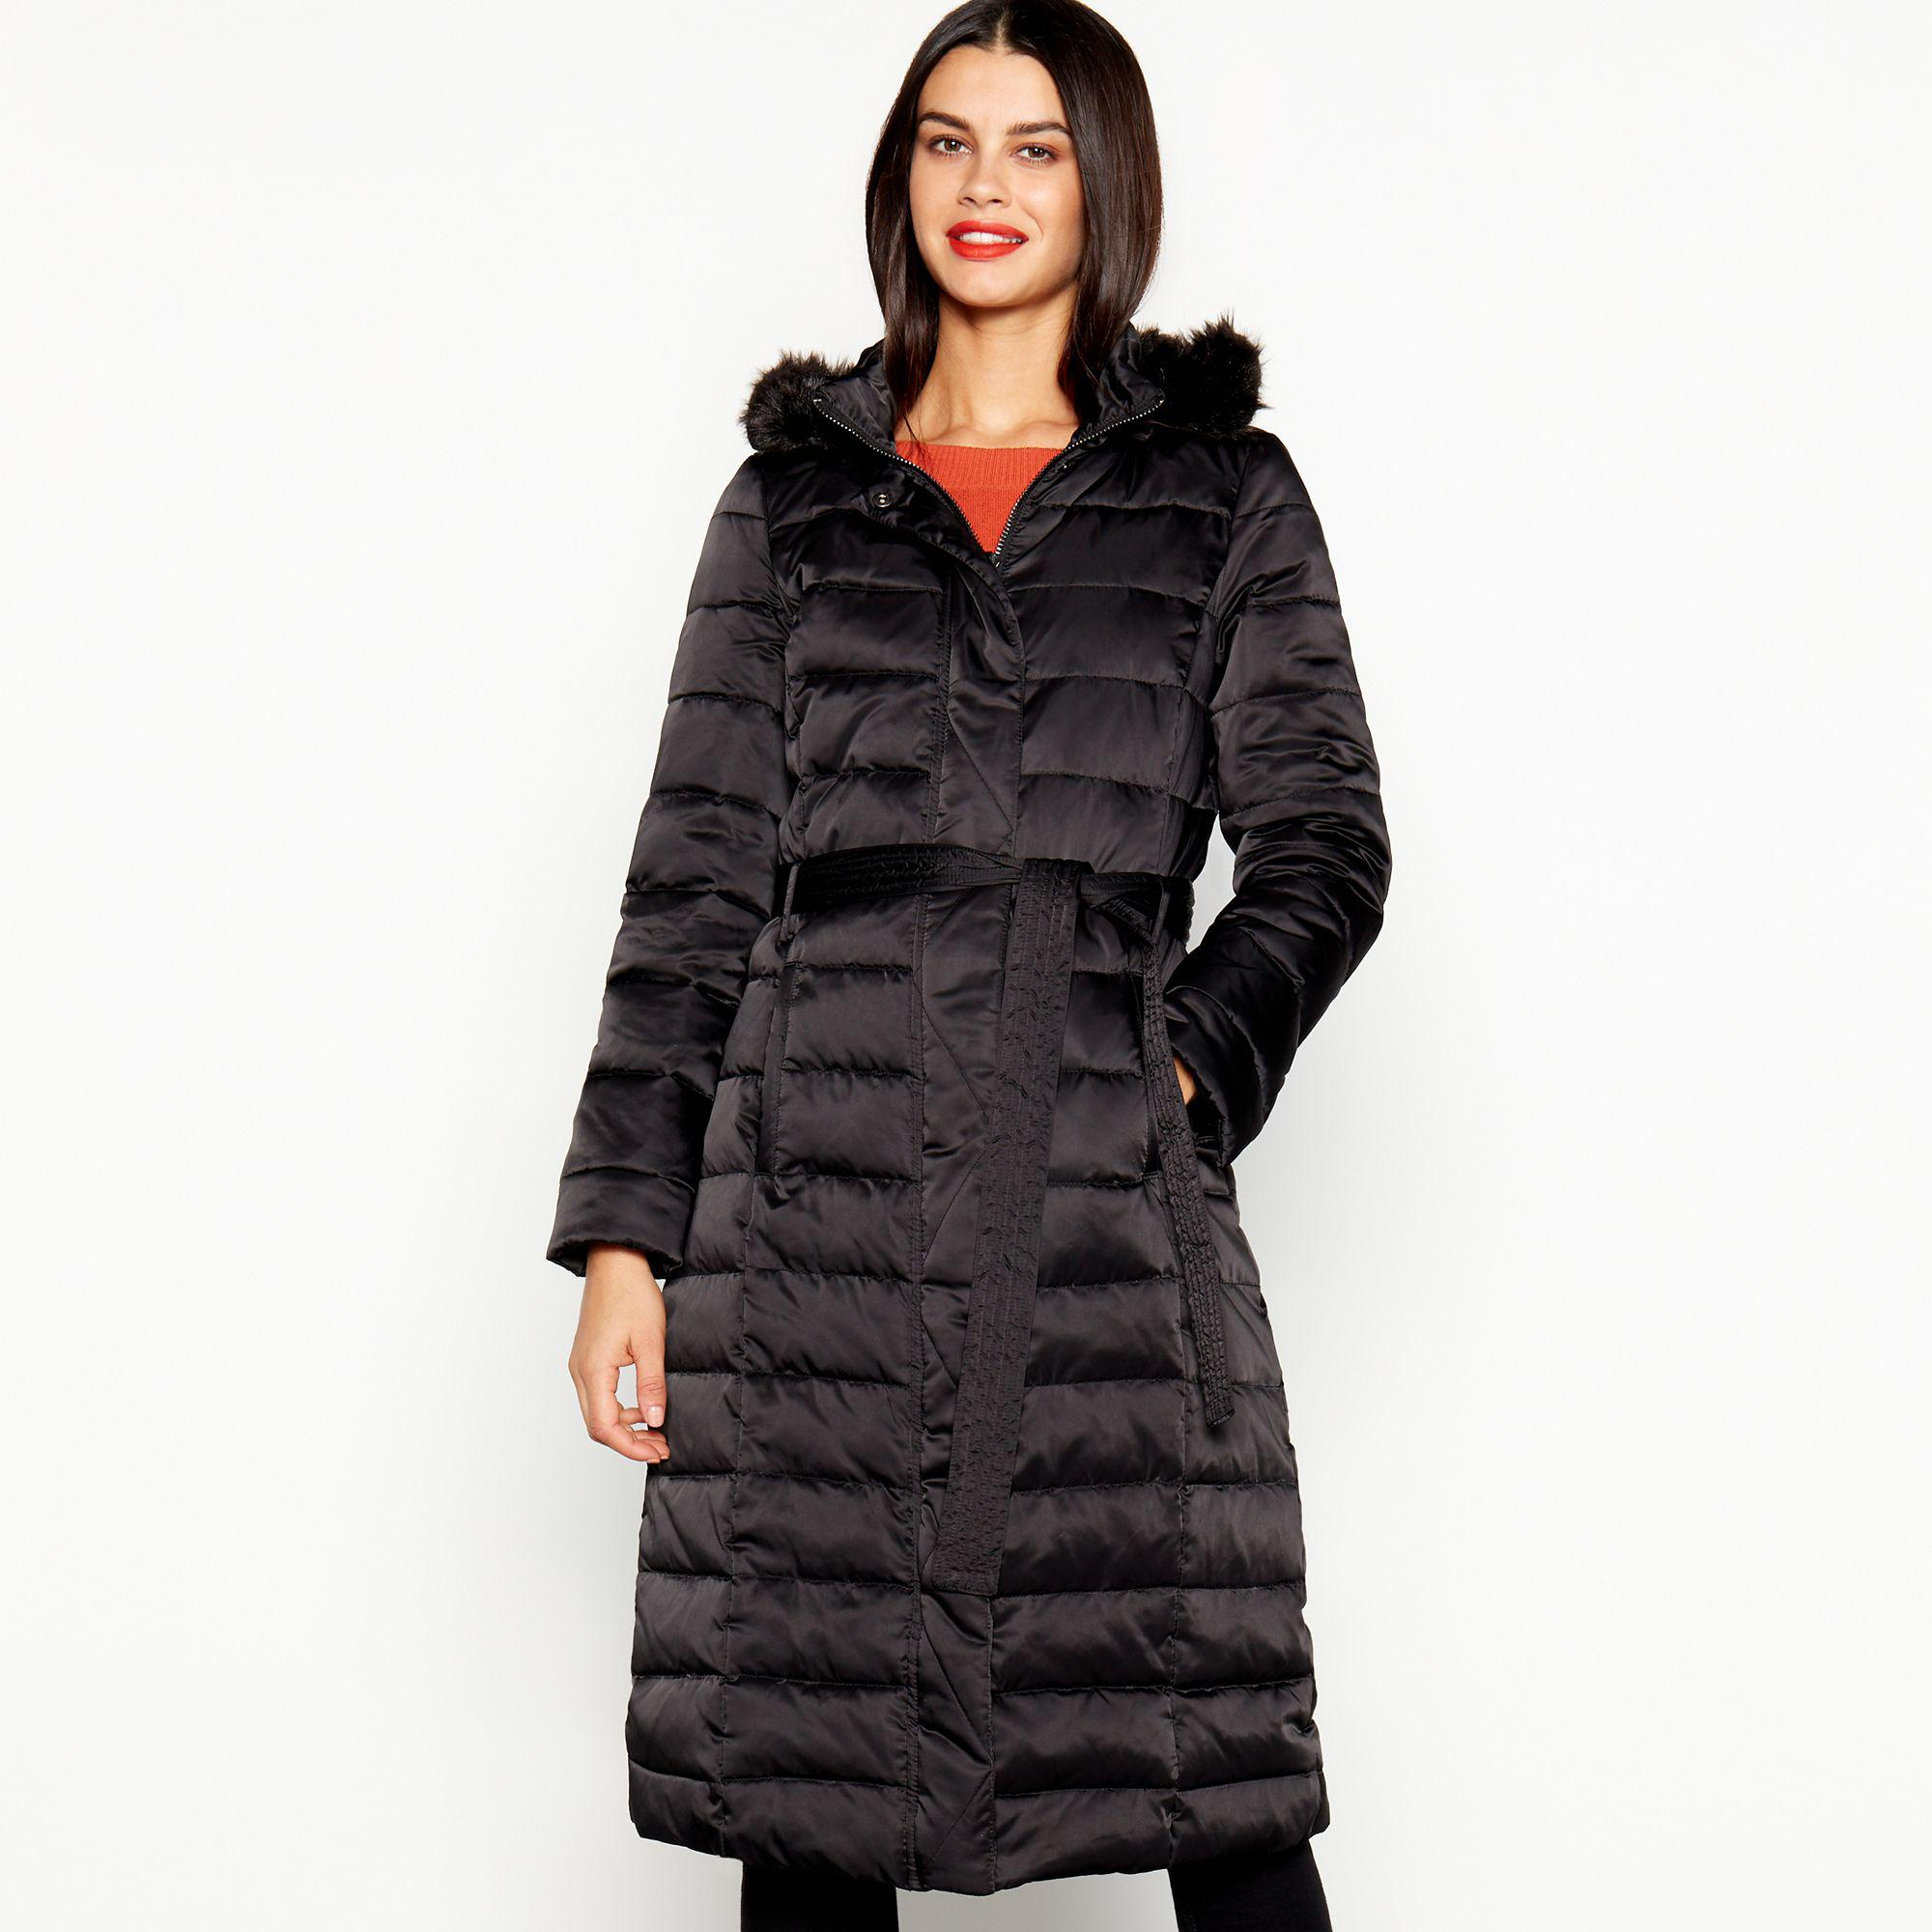 29adc3fc029 J By Jasper Conran Black Quilted Feather And Down Hooded Coat in ...